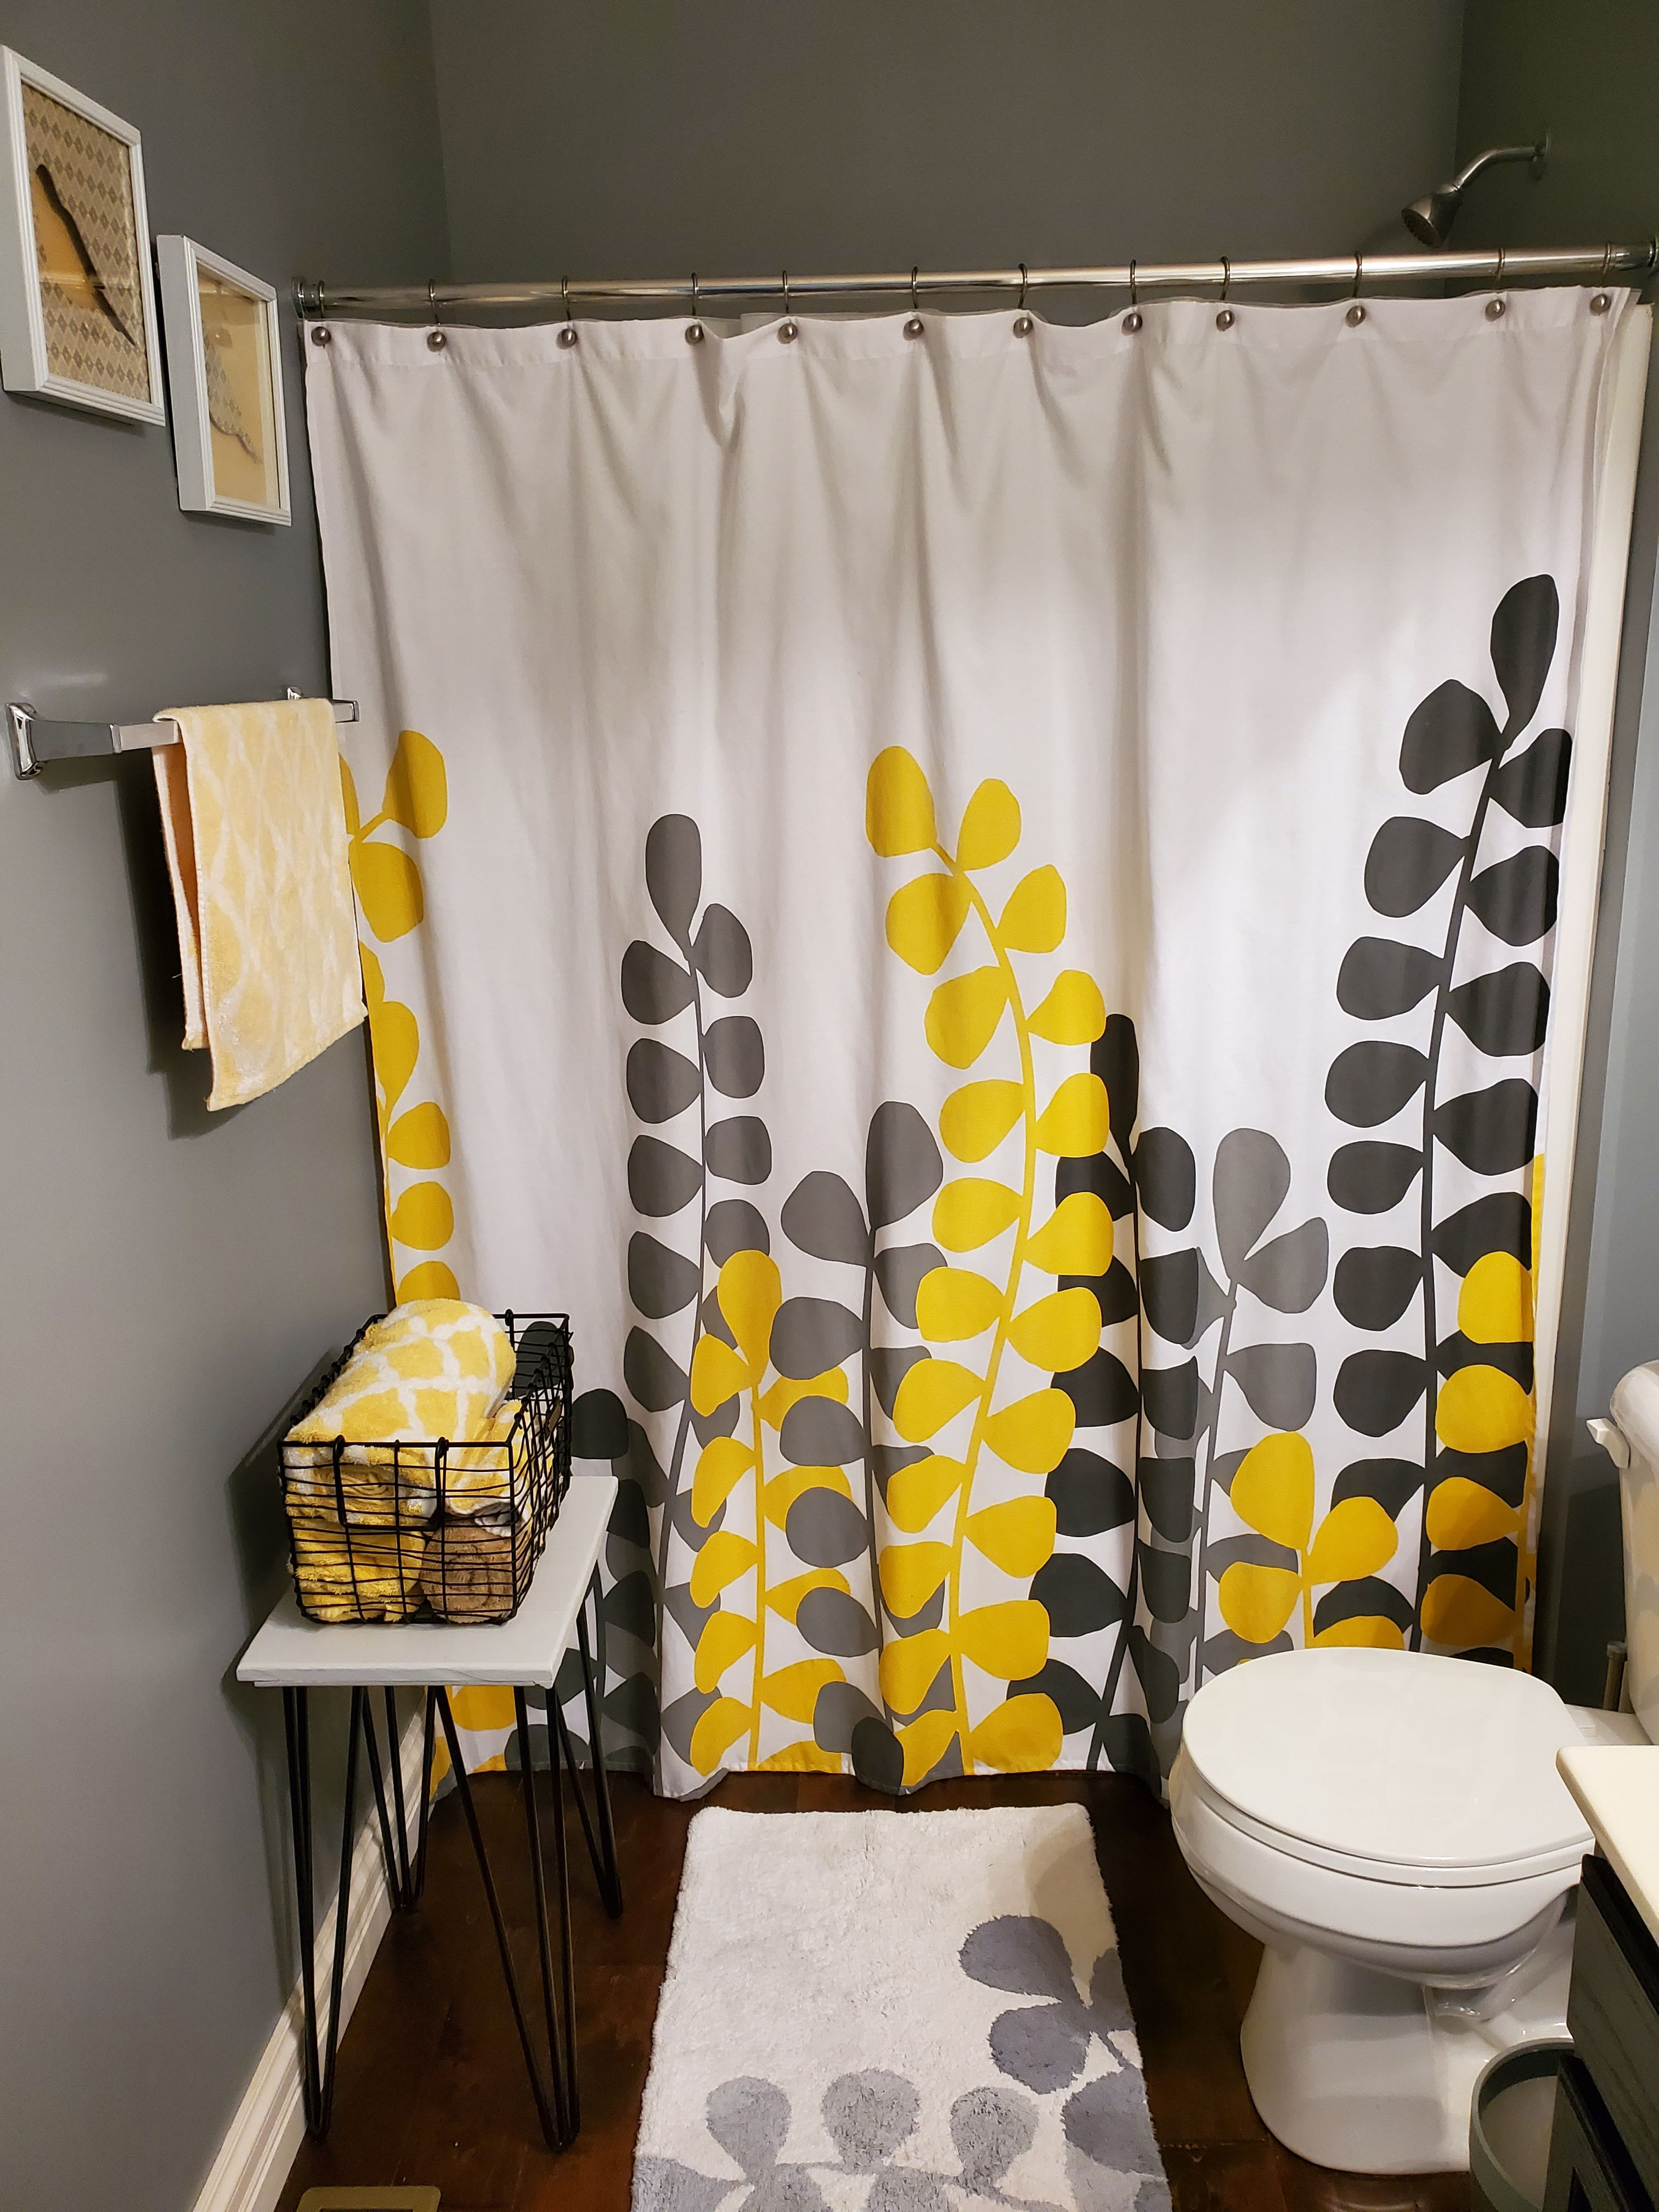 Pin By Linda Wallace On For The Home In 2020 Home Printed Shower Curtain Curtains